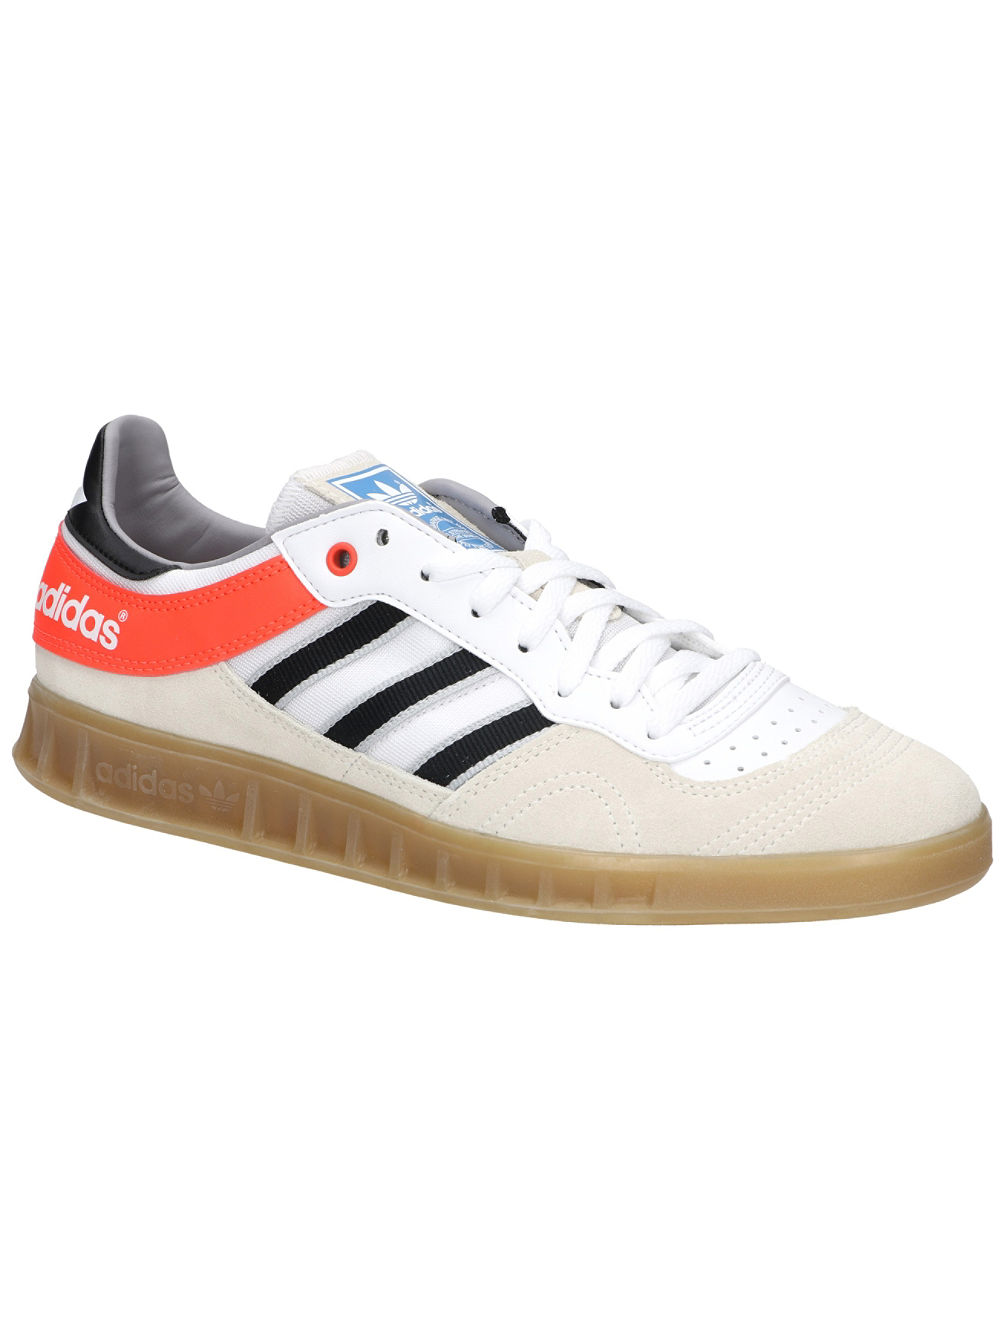 the best attitude 51e85 0fcf6 Buy adidas Originals Handball Top Sneakers online at Blue Tomato